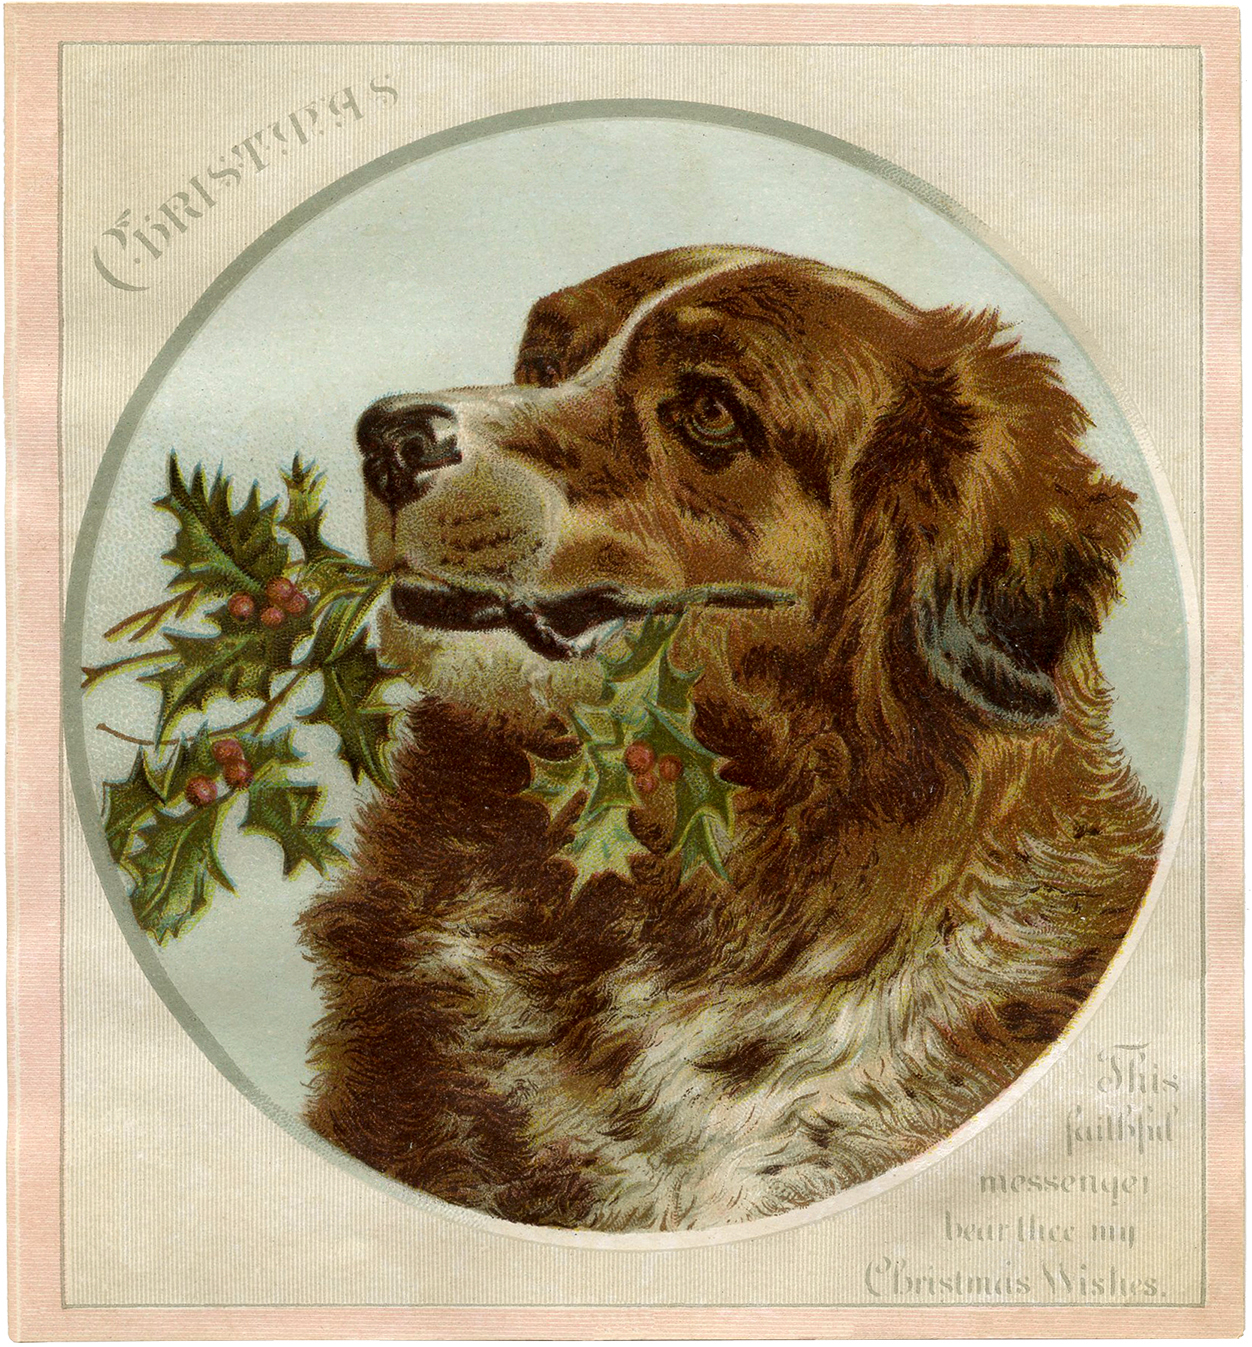 Lovely Christmas Dog Image The Graphics Fairy